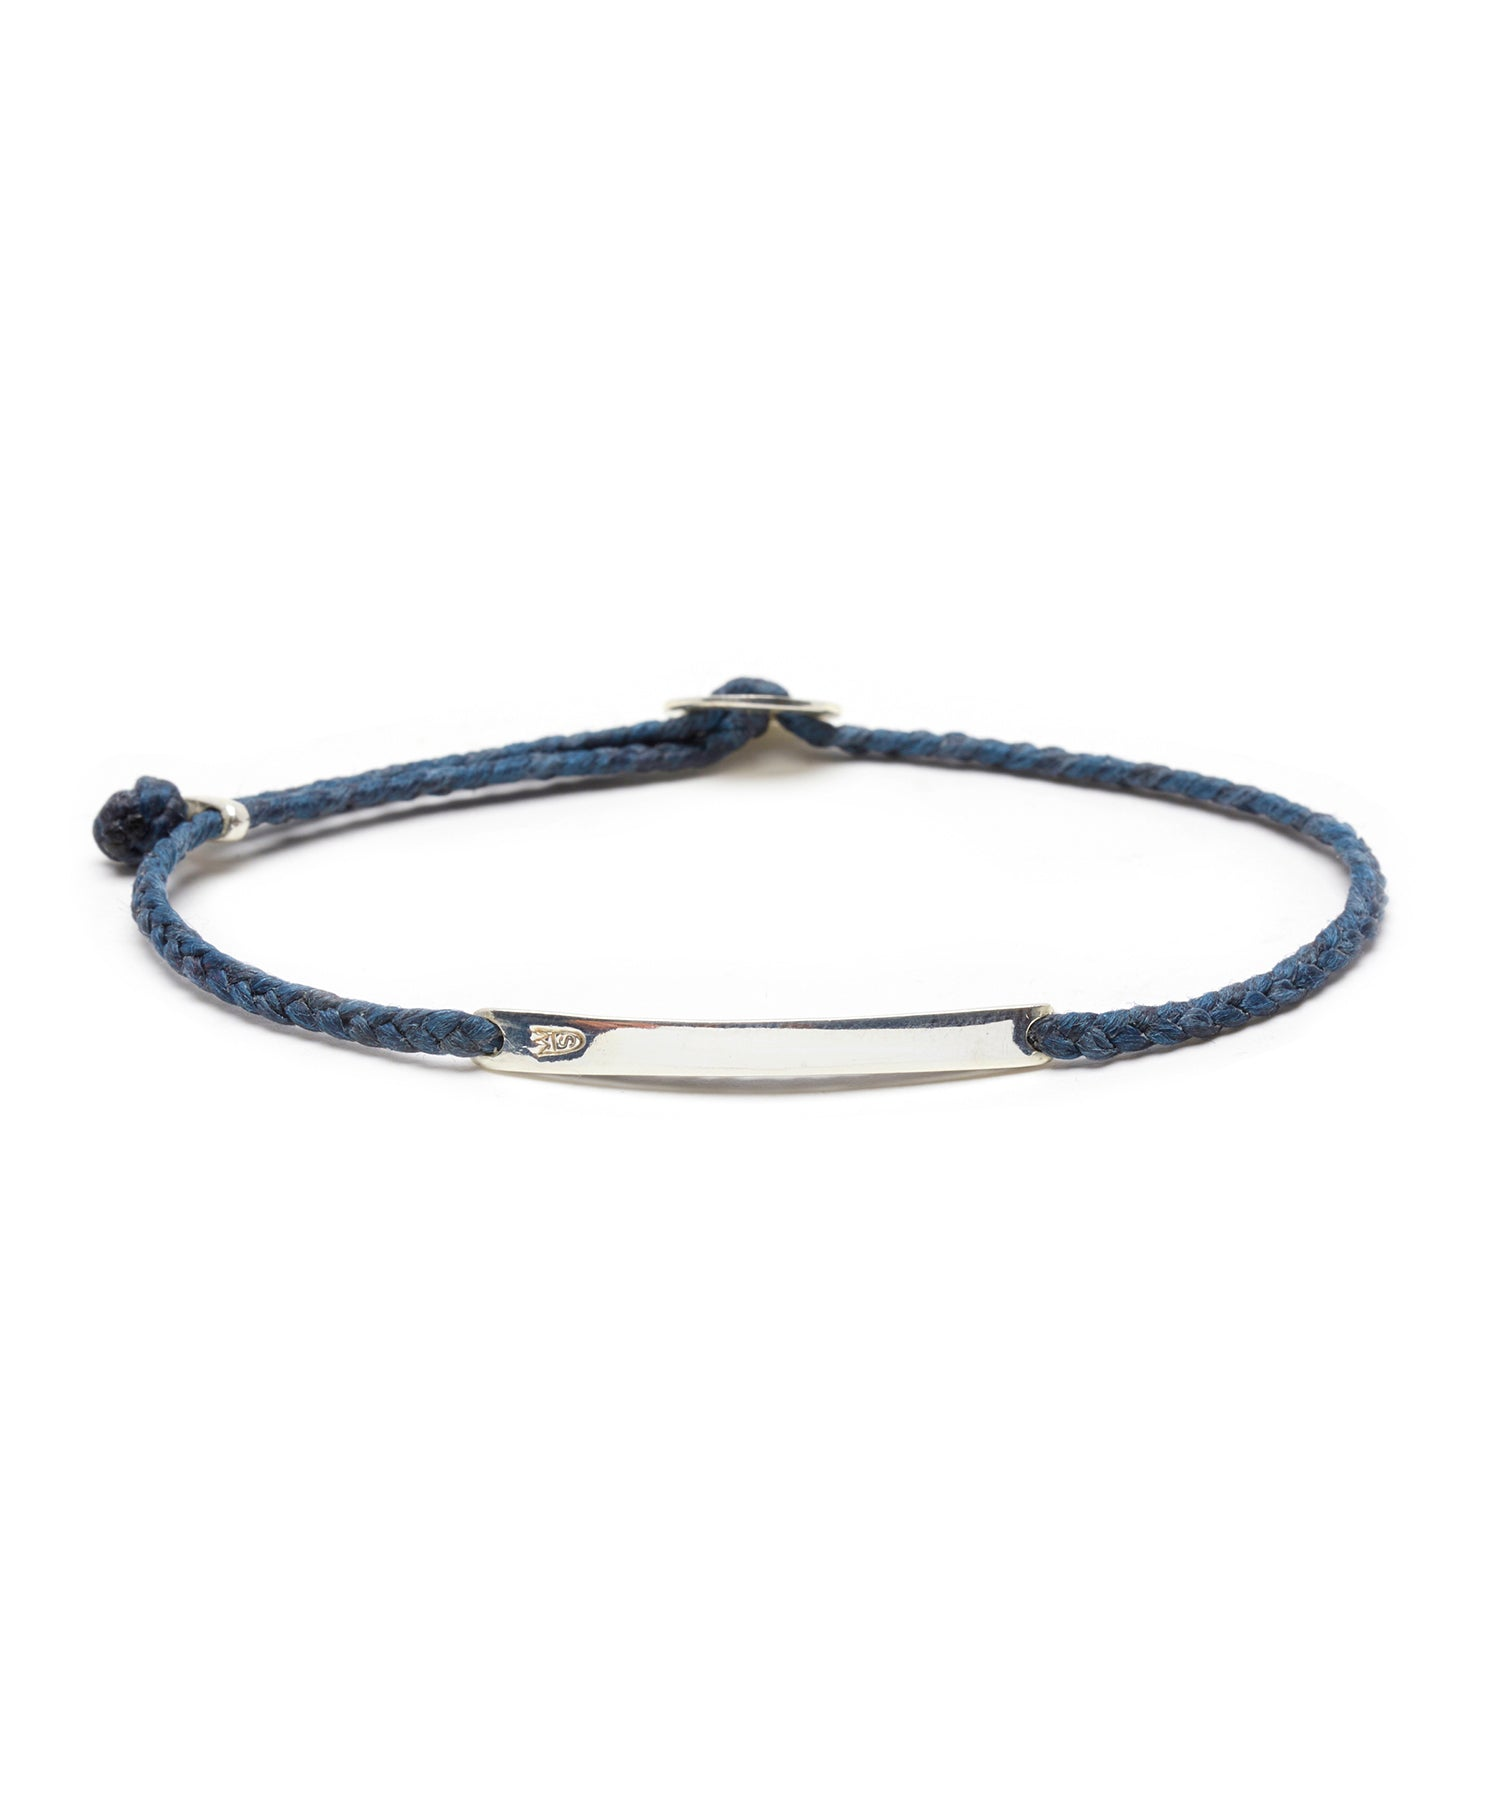 Scosha Signature ID Slider Bracelet in Denim